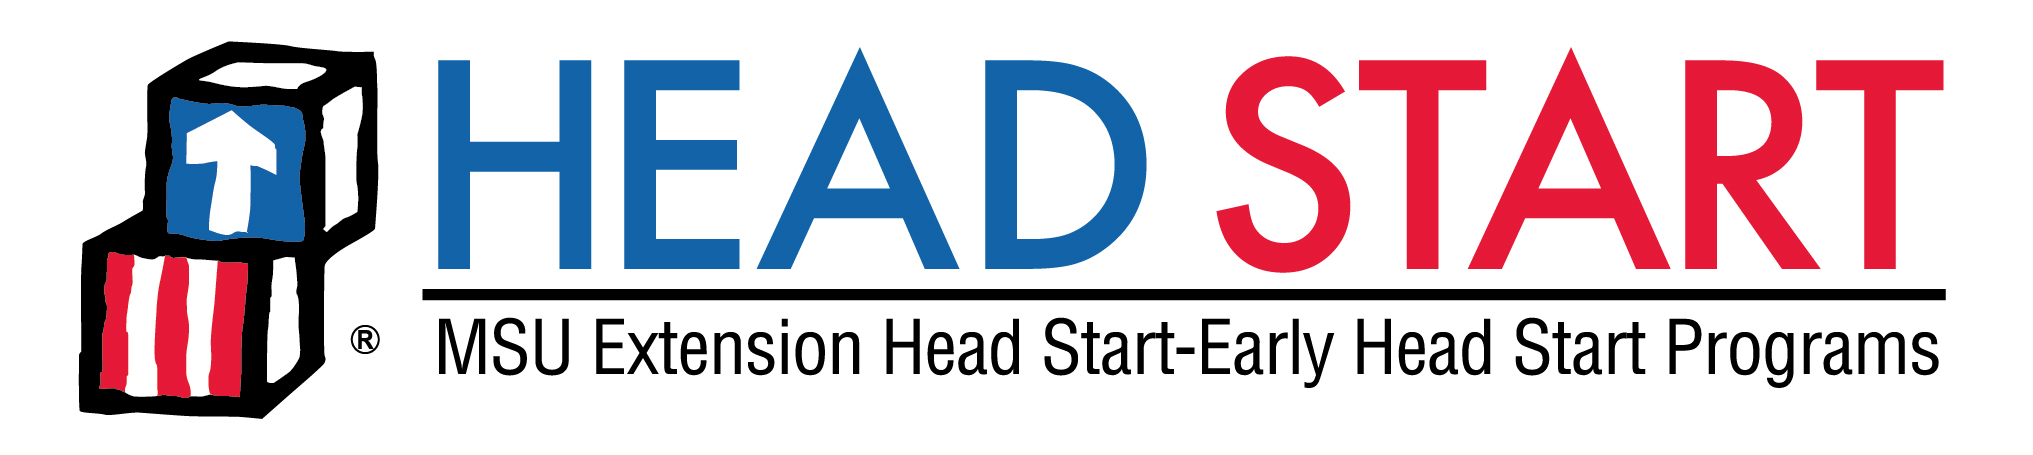 MSU Extension Head Start-Early Head Start Program